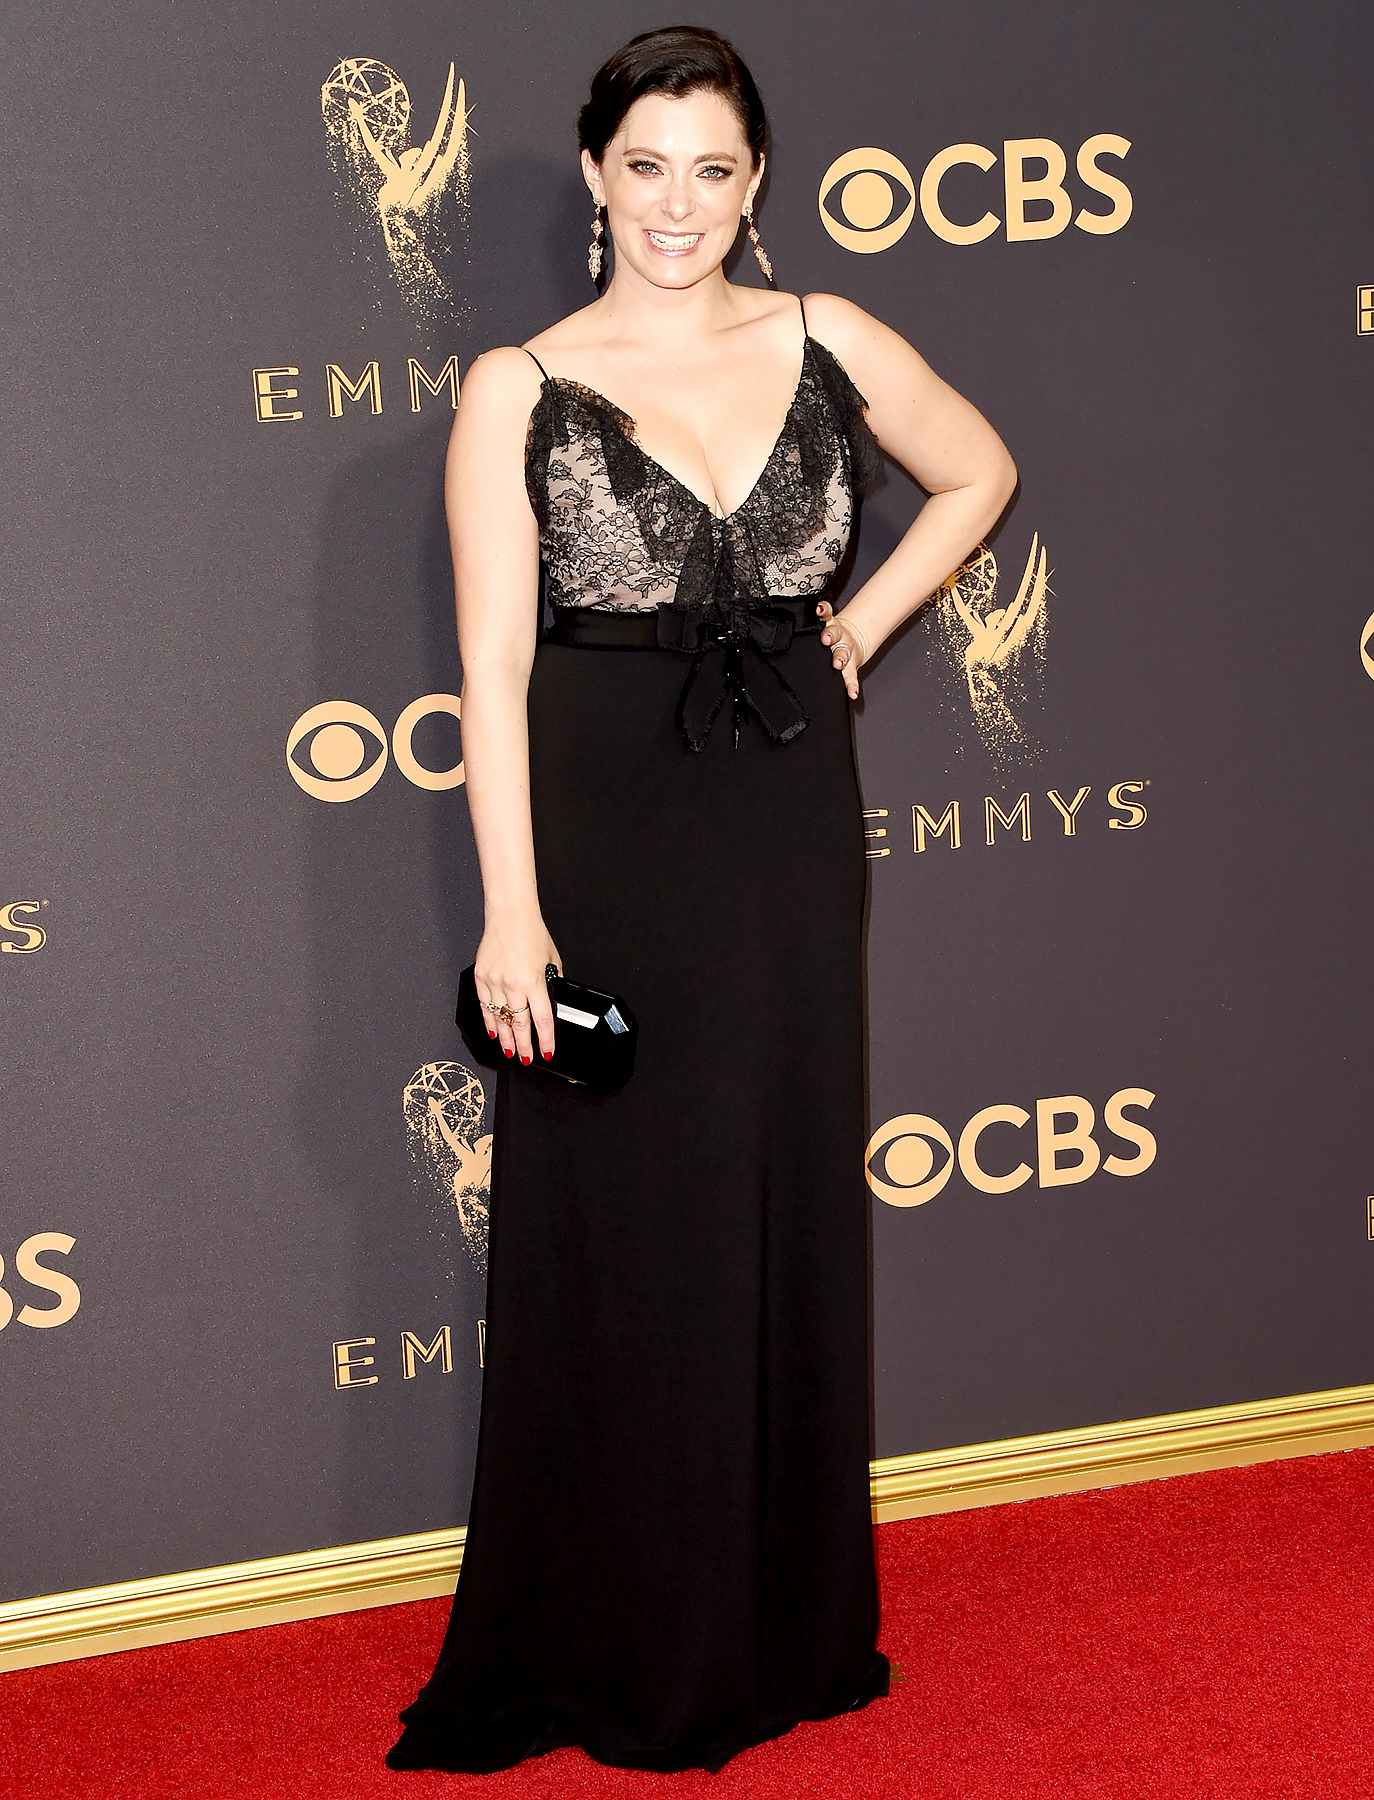 Rachel Bloom attends the 69th Annual Primetime Emmy Awards at Microsoft Theater on September 17, 2017 in Los Angeles, California.